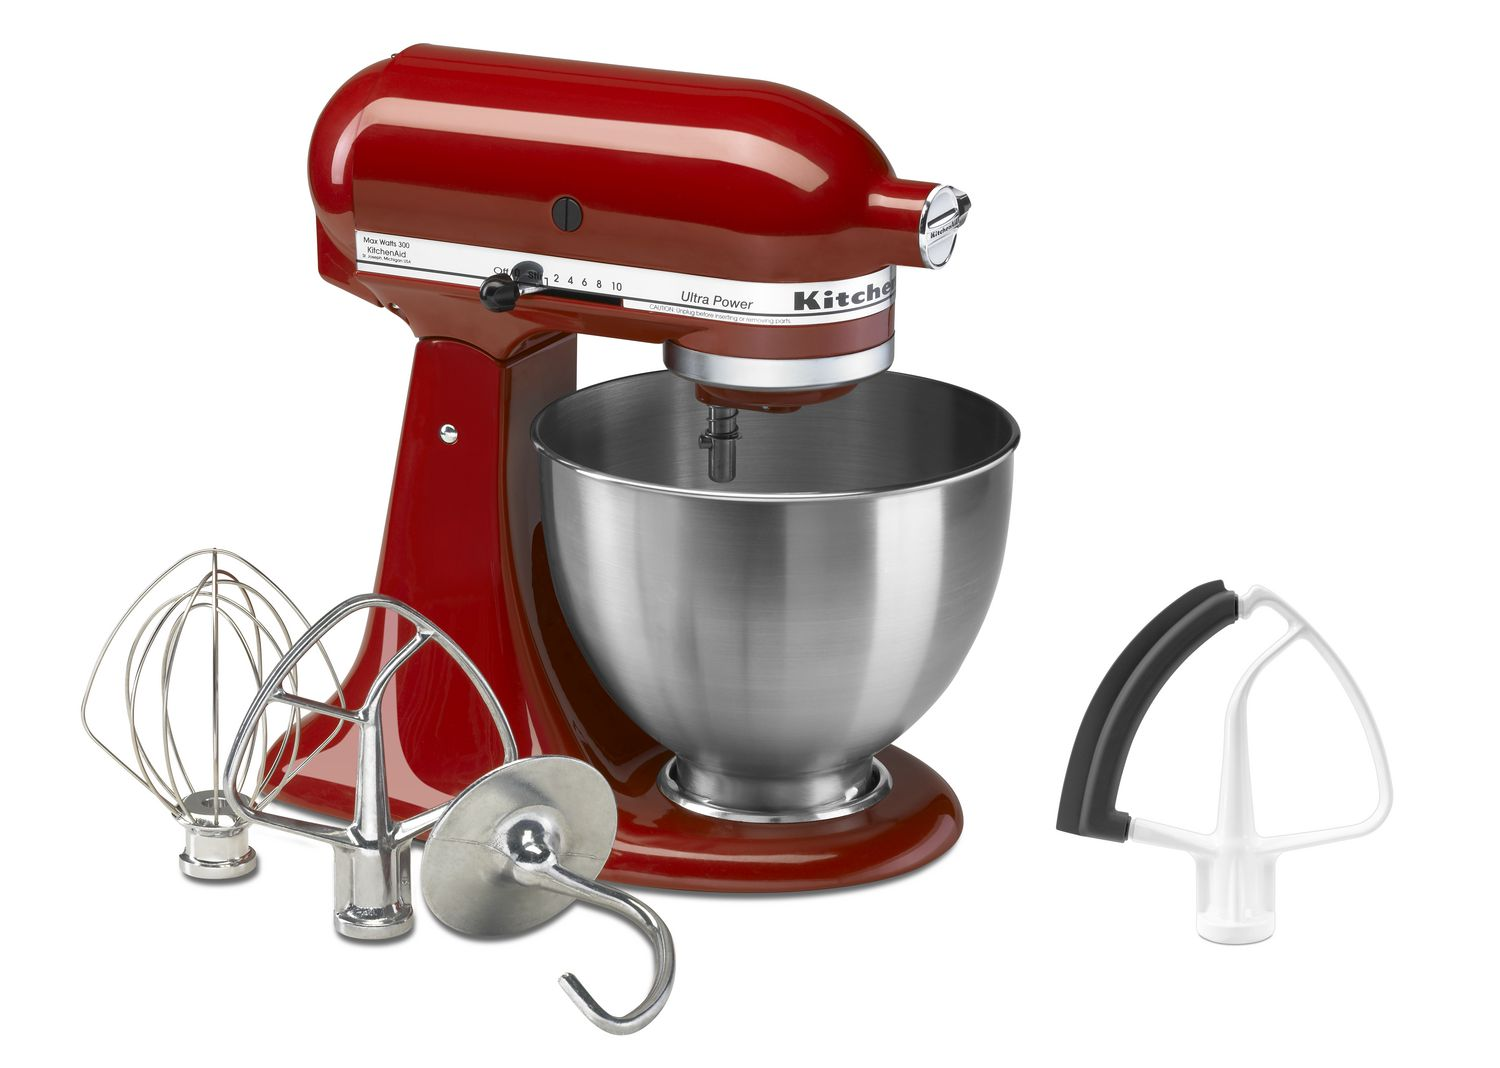 Kitchenaid Batteur Sur Socle Batteur Sur Socle Ultra Power De Kitchenaid à Tête Inclinable Avec